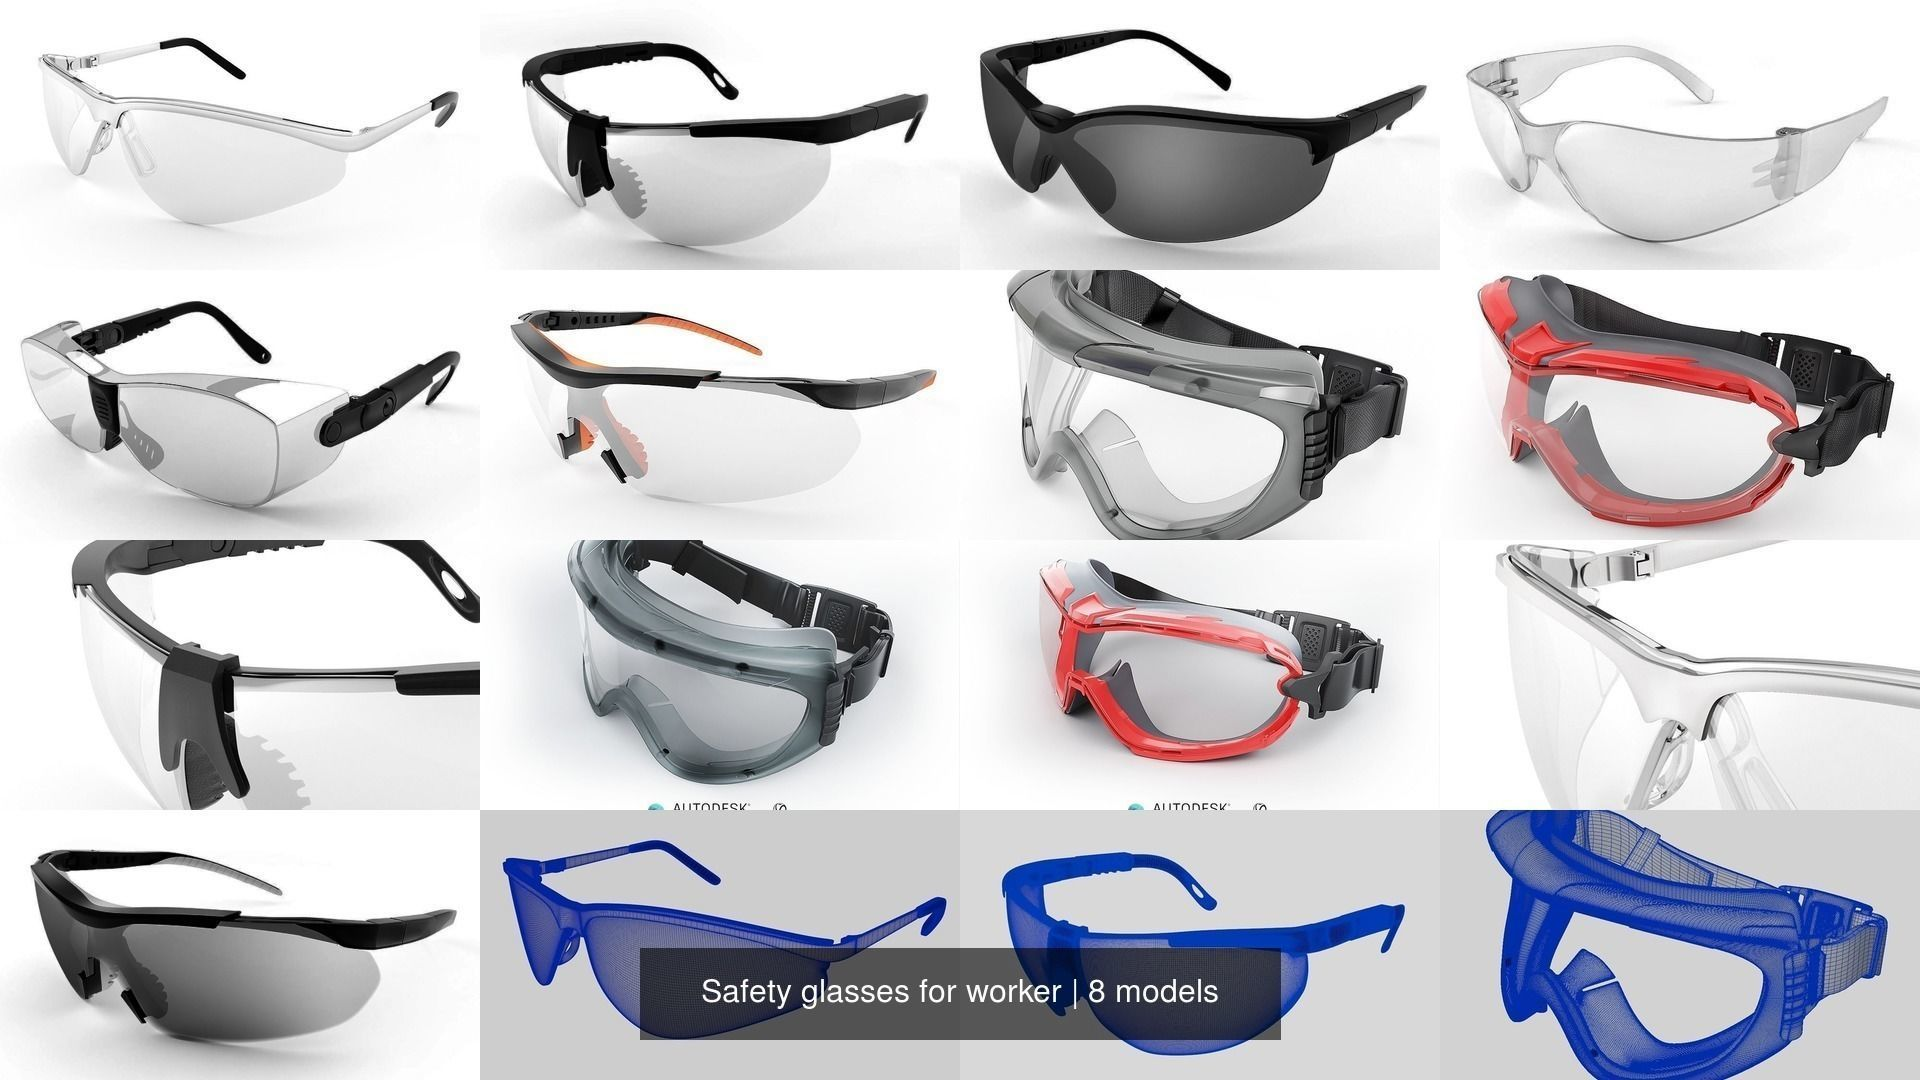 Safety glasses for worker